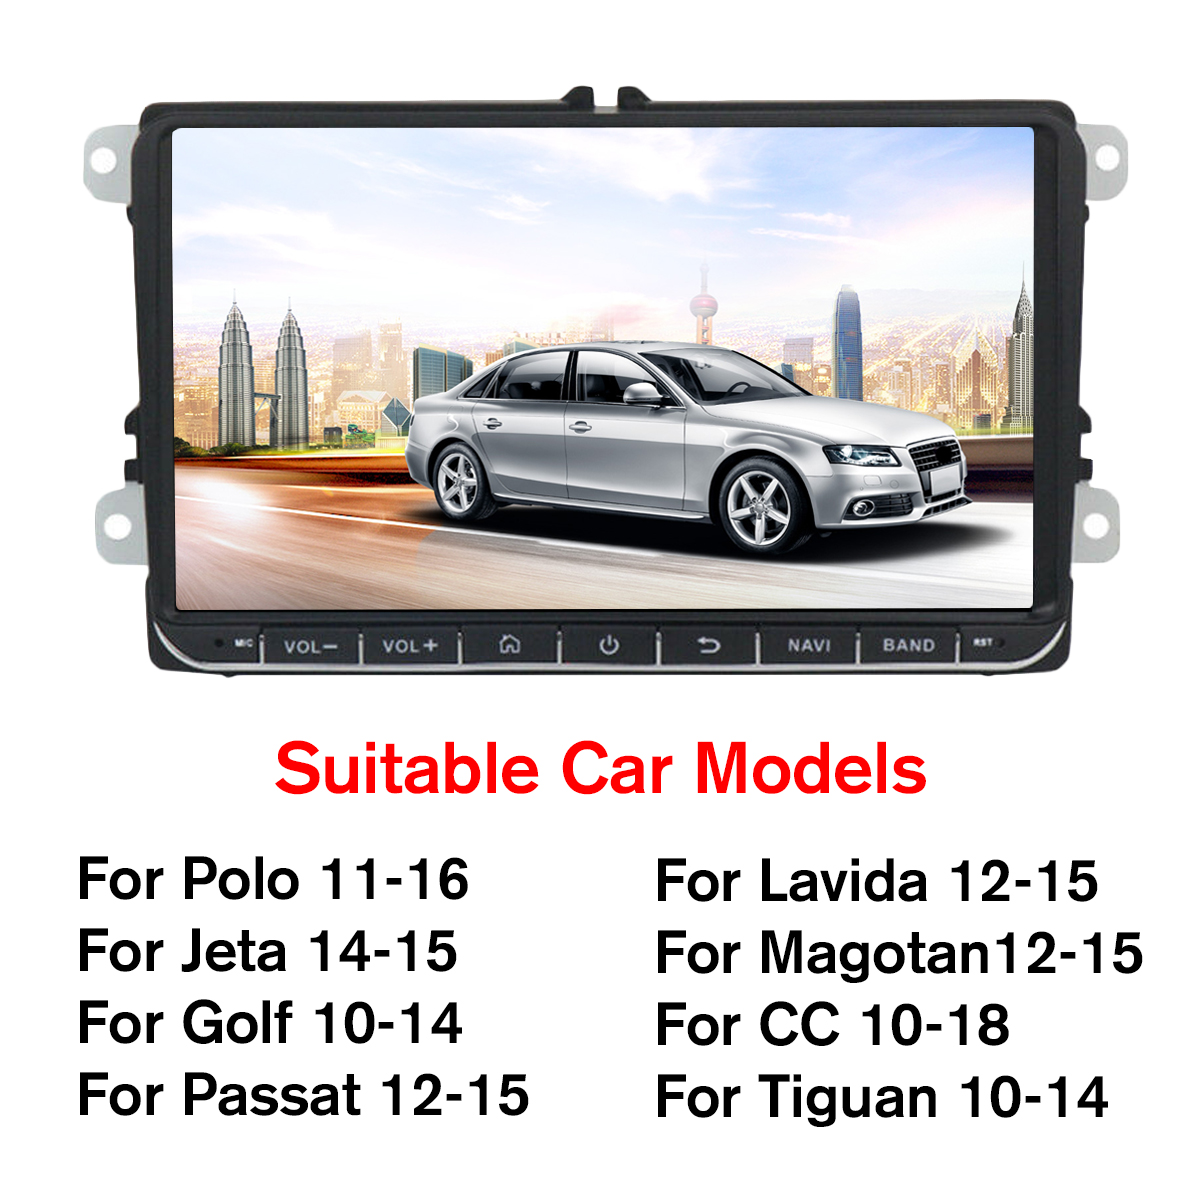 9 Inch 2DIN for Android 8.1 HD Car Multimedia Player Quad Core 1G+16G Touch Screen Car Radio Stereo bluetooth FM AM DAB DTV USB for VW/Skoda Seat